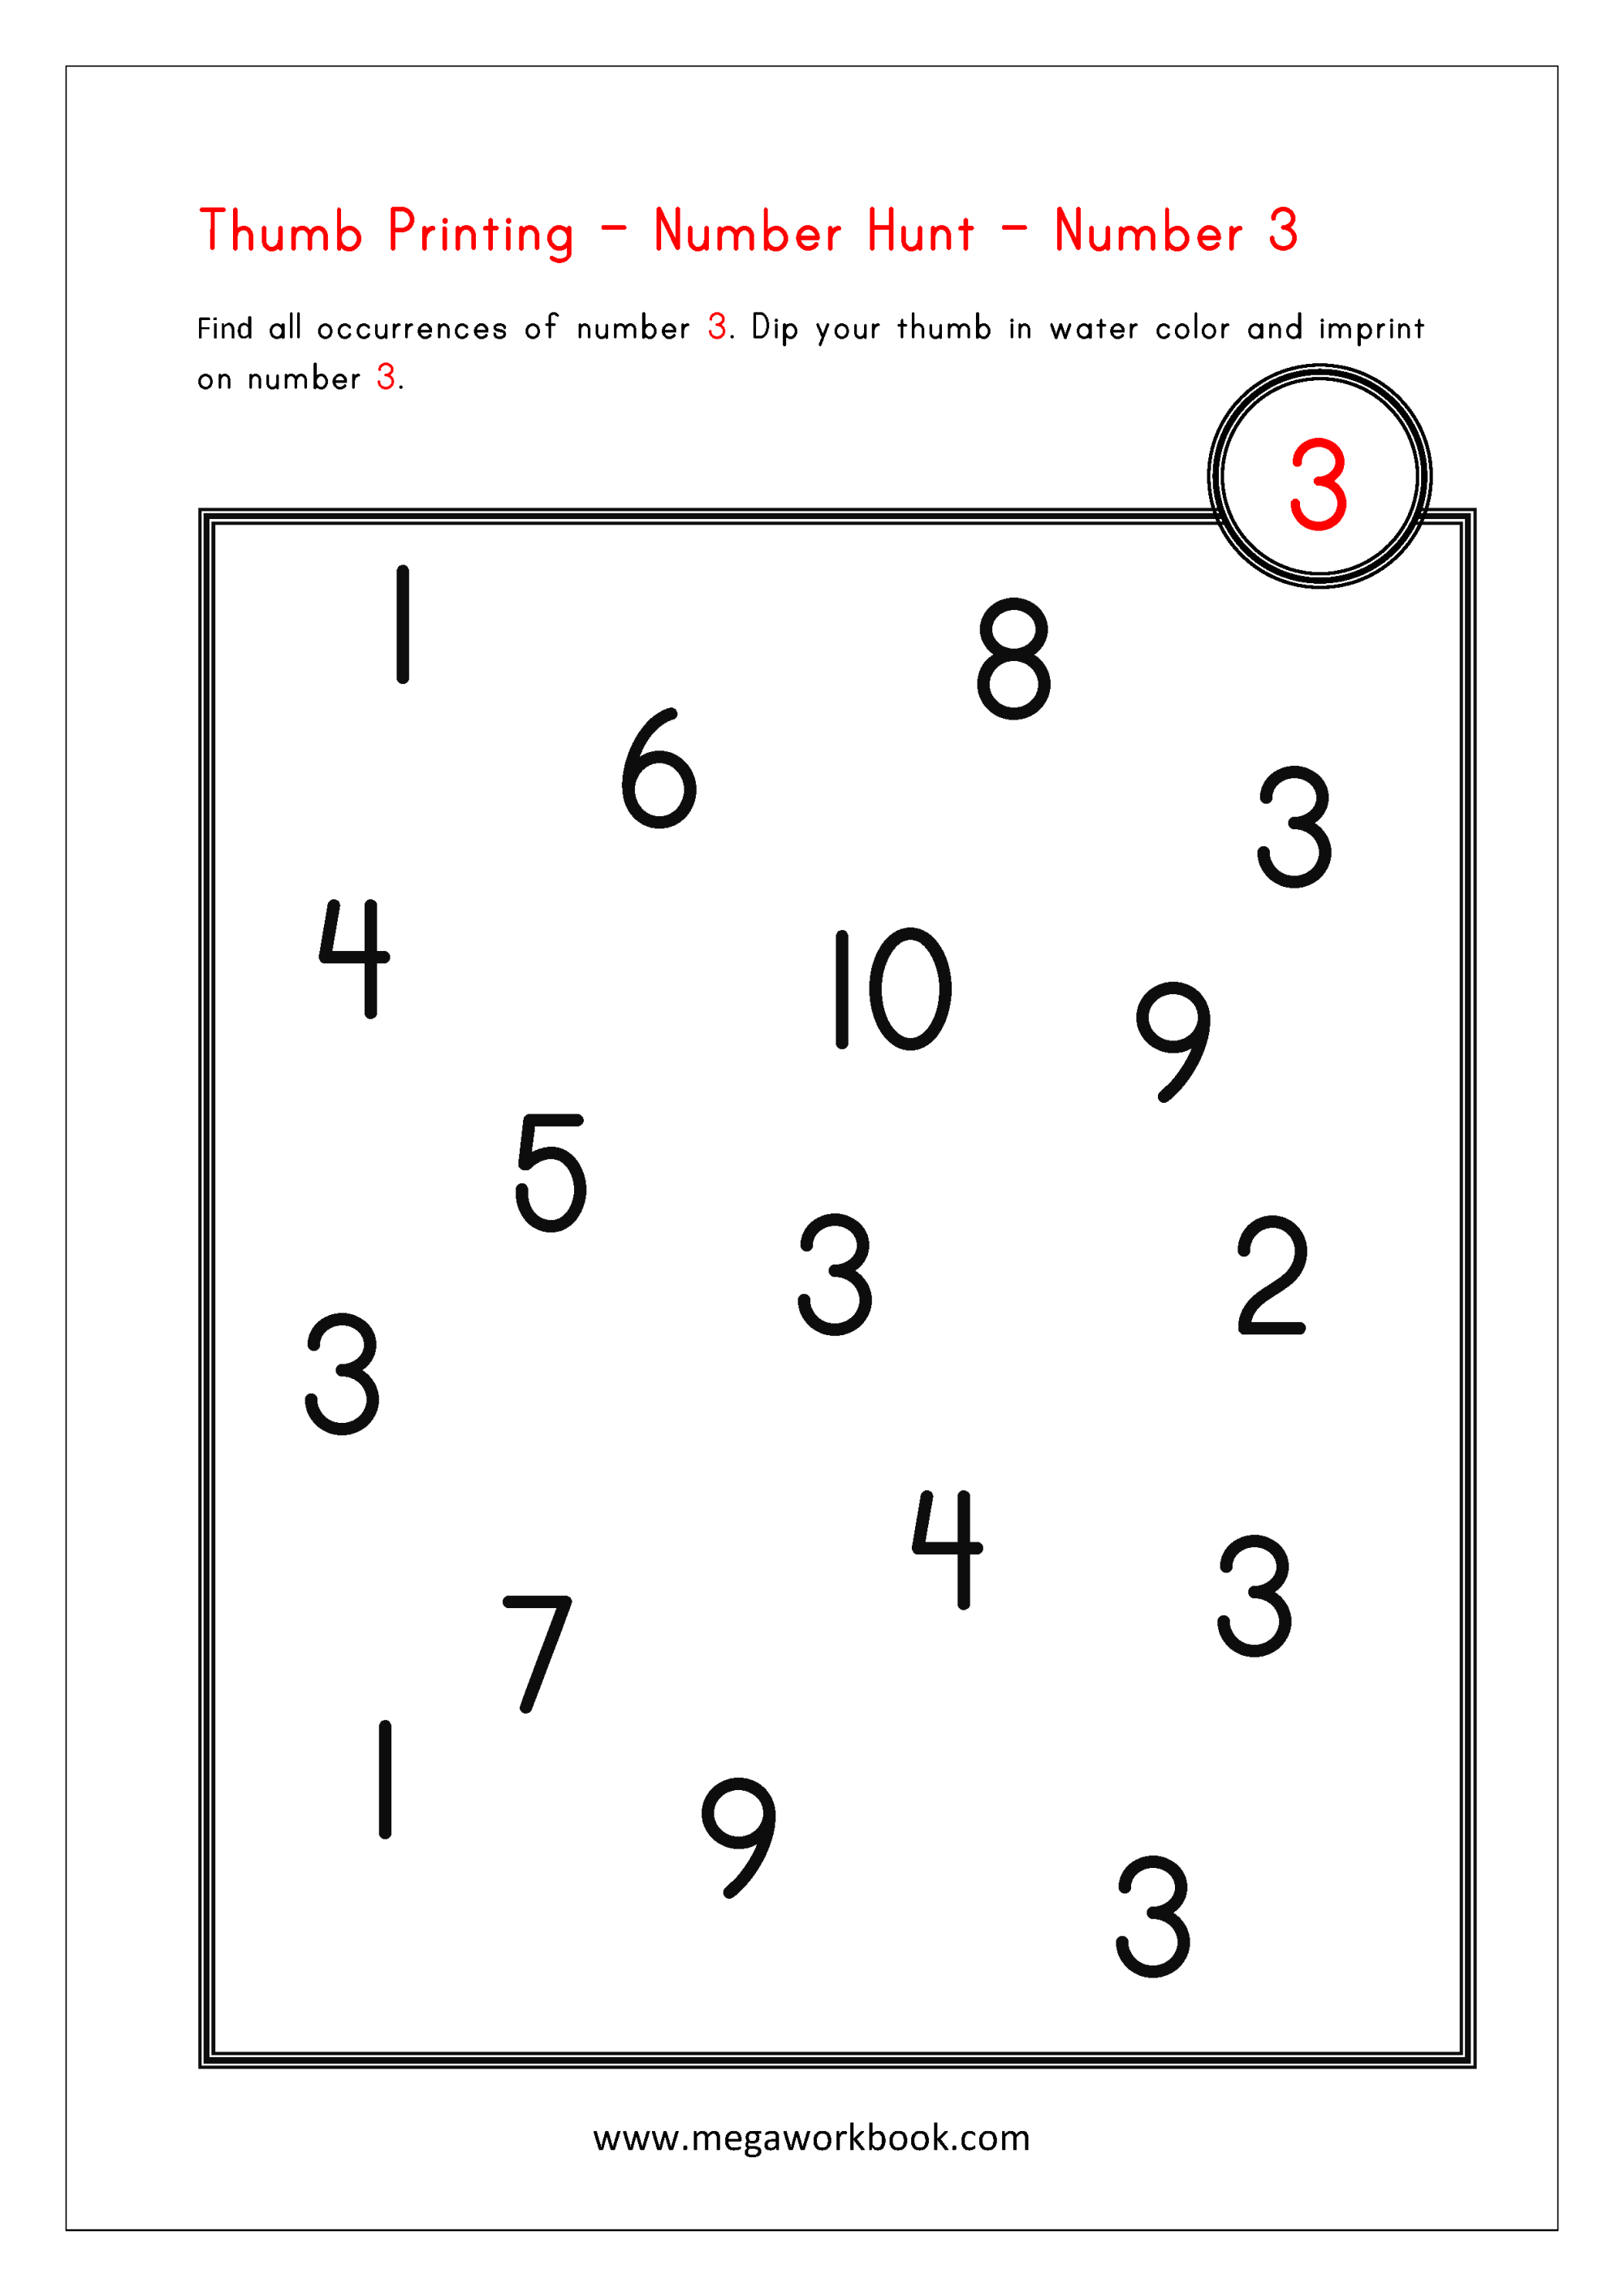 hight resolution of Math Activities for Preschoolers - Fun Math Activities - Kindergarten Math  Activities - MegaWorkbook